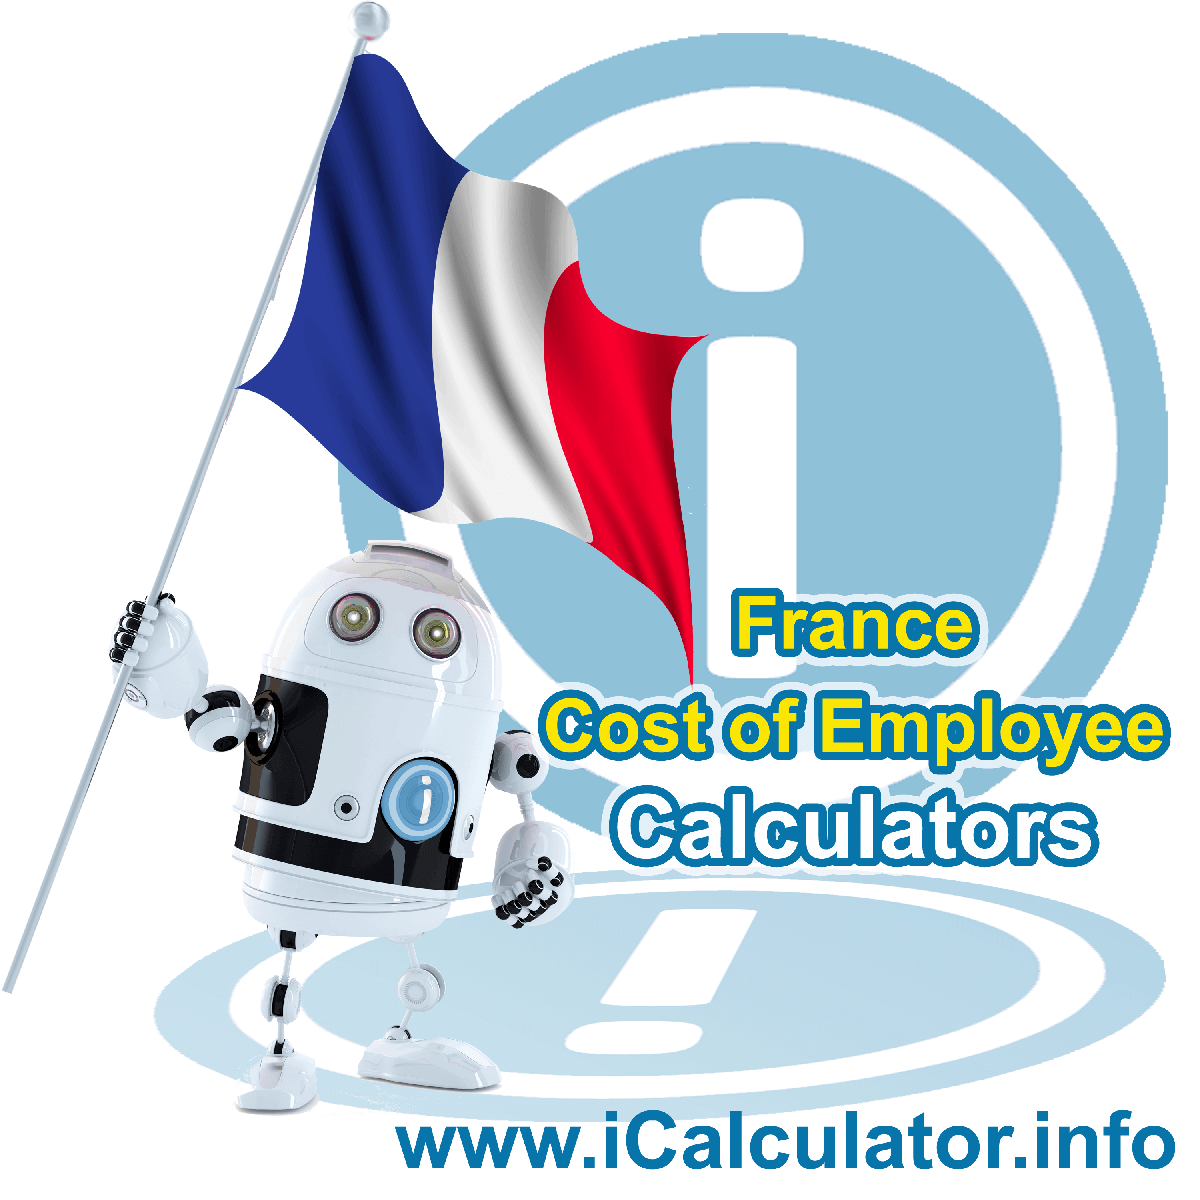 True Cost of an Employee in France Calculator. This image shows a new employer in France looking hiring a new employee, they calculate the cost of hiring an employee in France using the True Cost of an Employee in France calculator to understand their employment cost in France in 2020